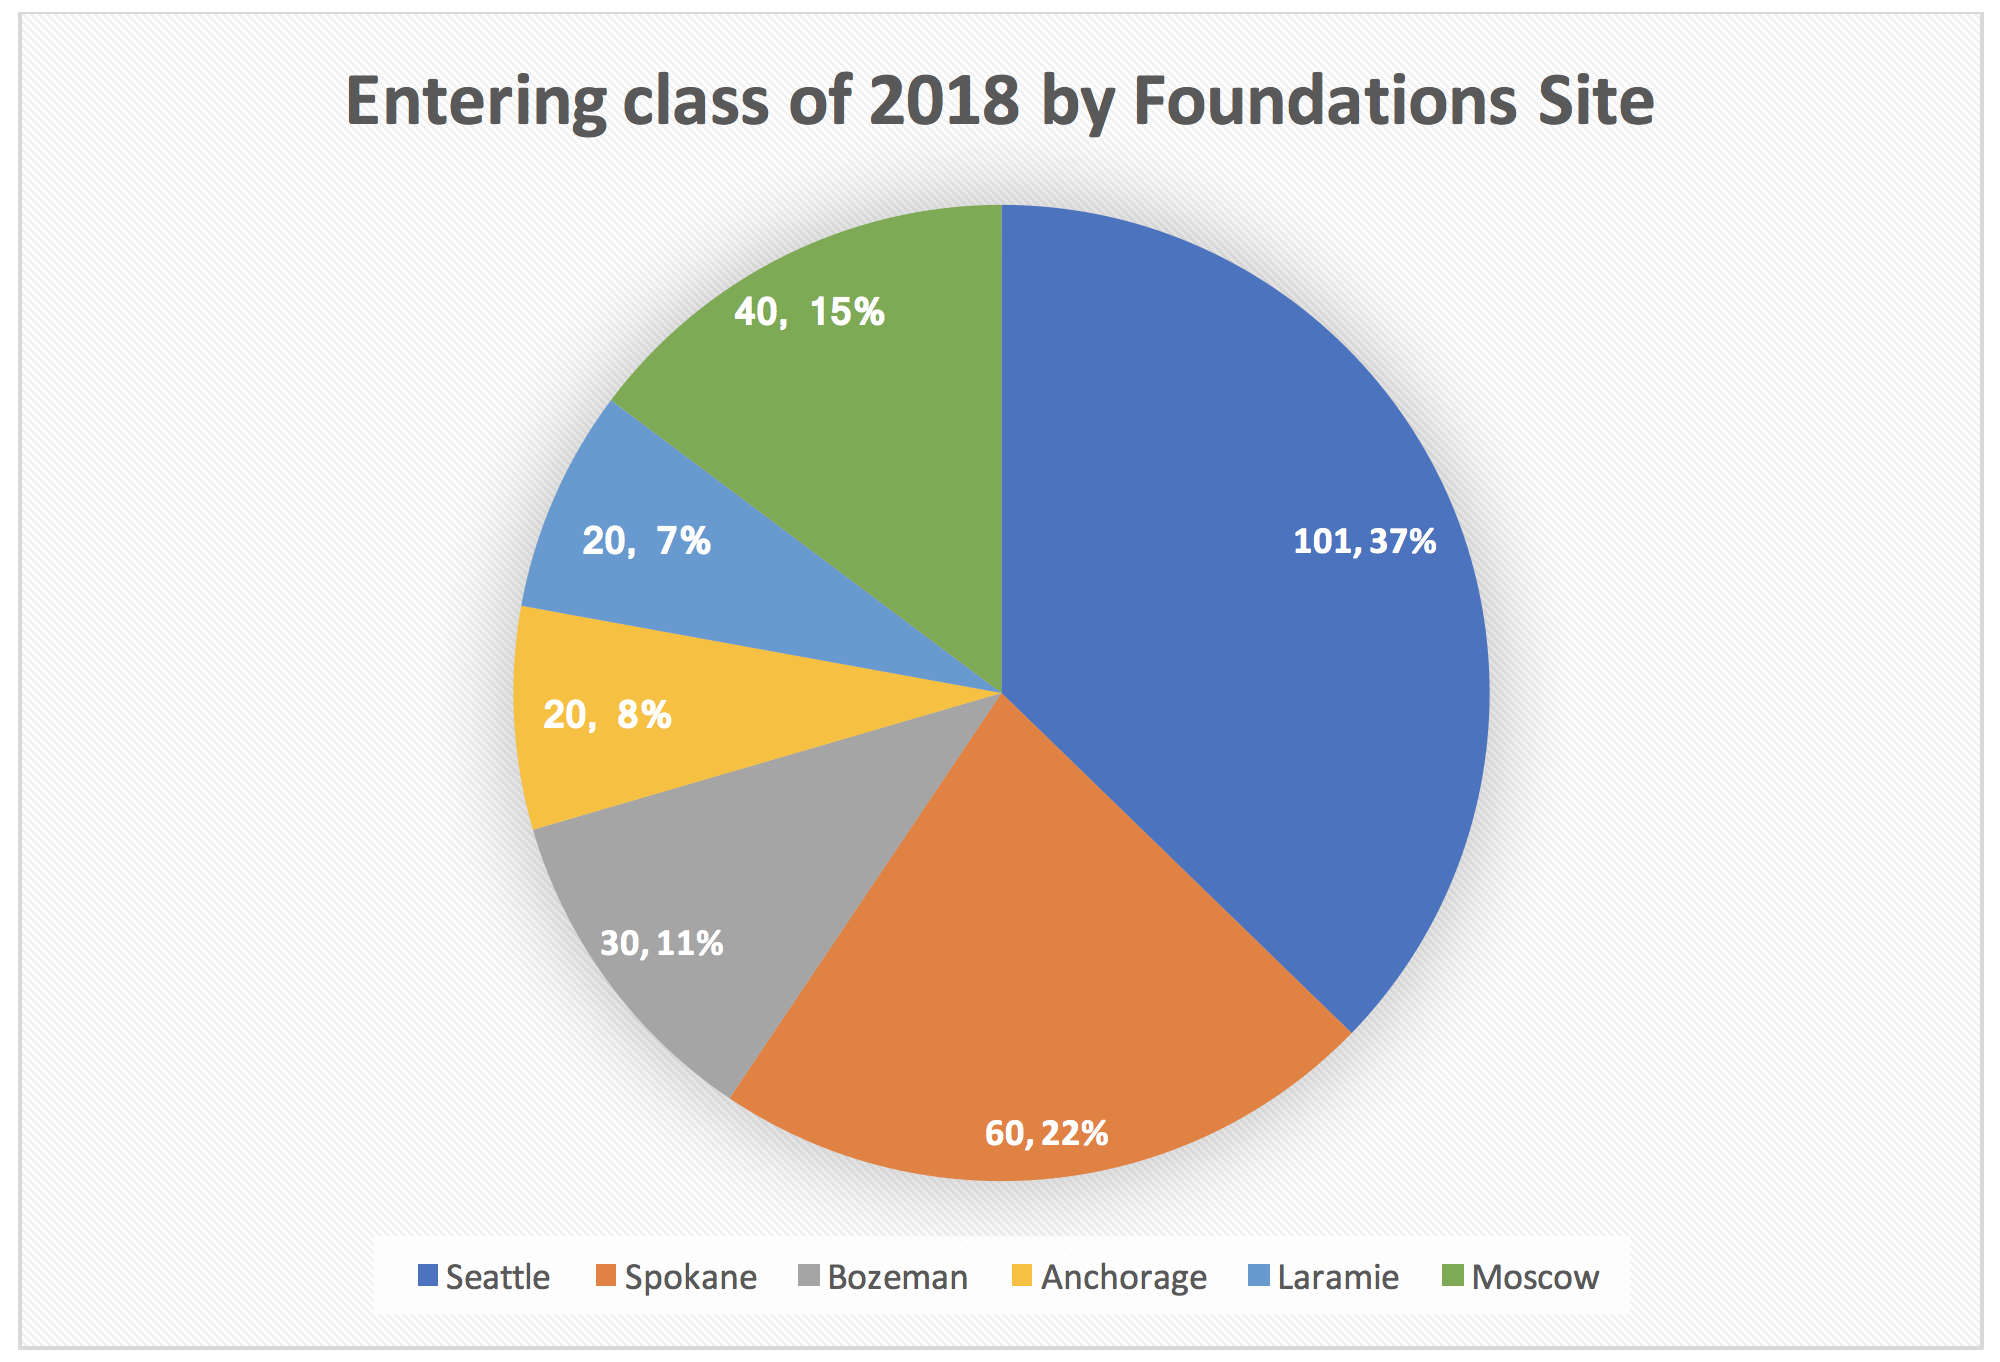 Entering class of 2018 by Foundations Site